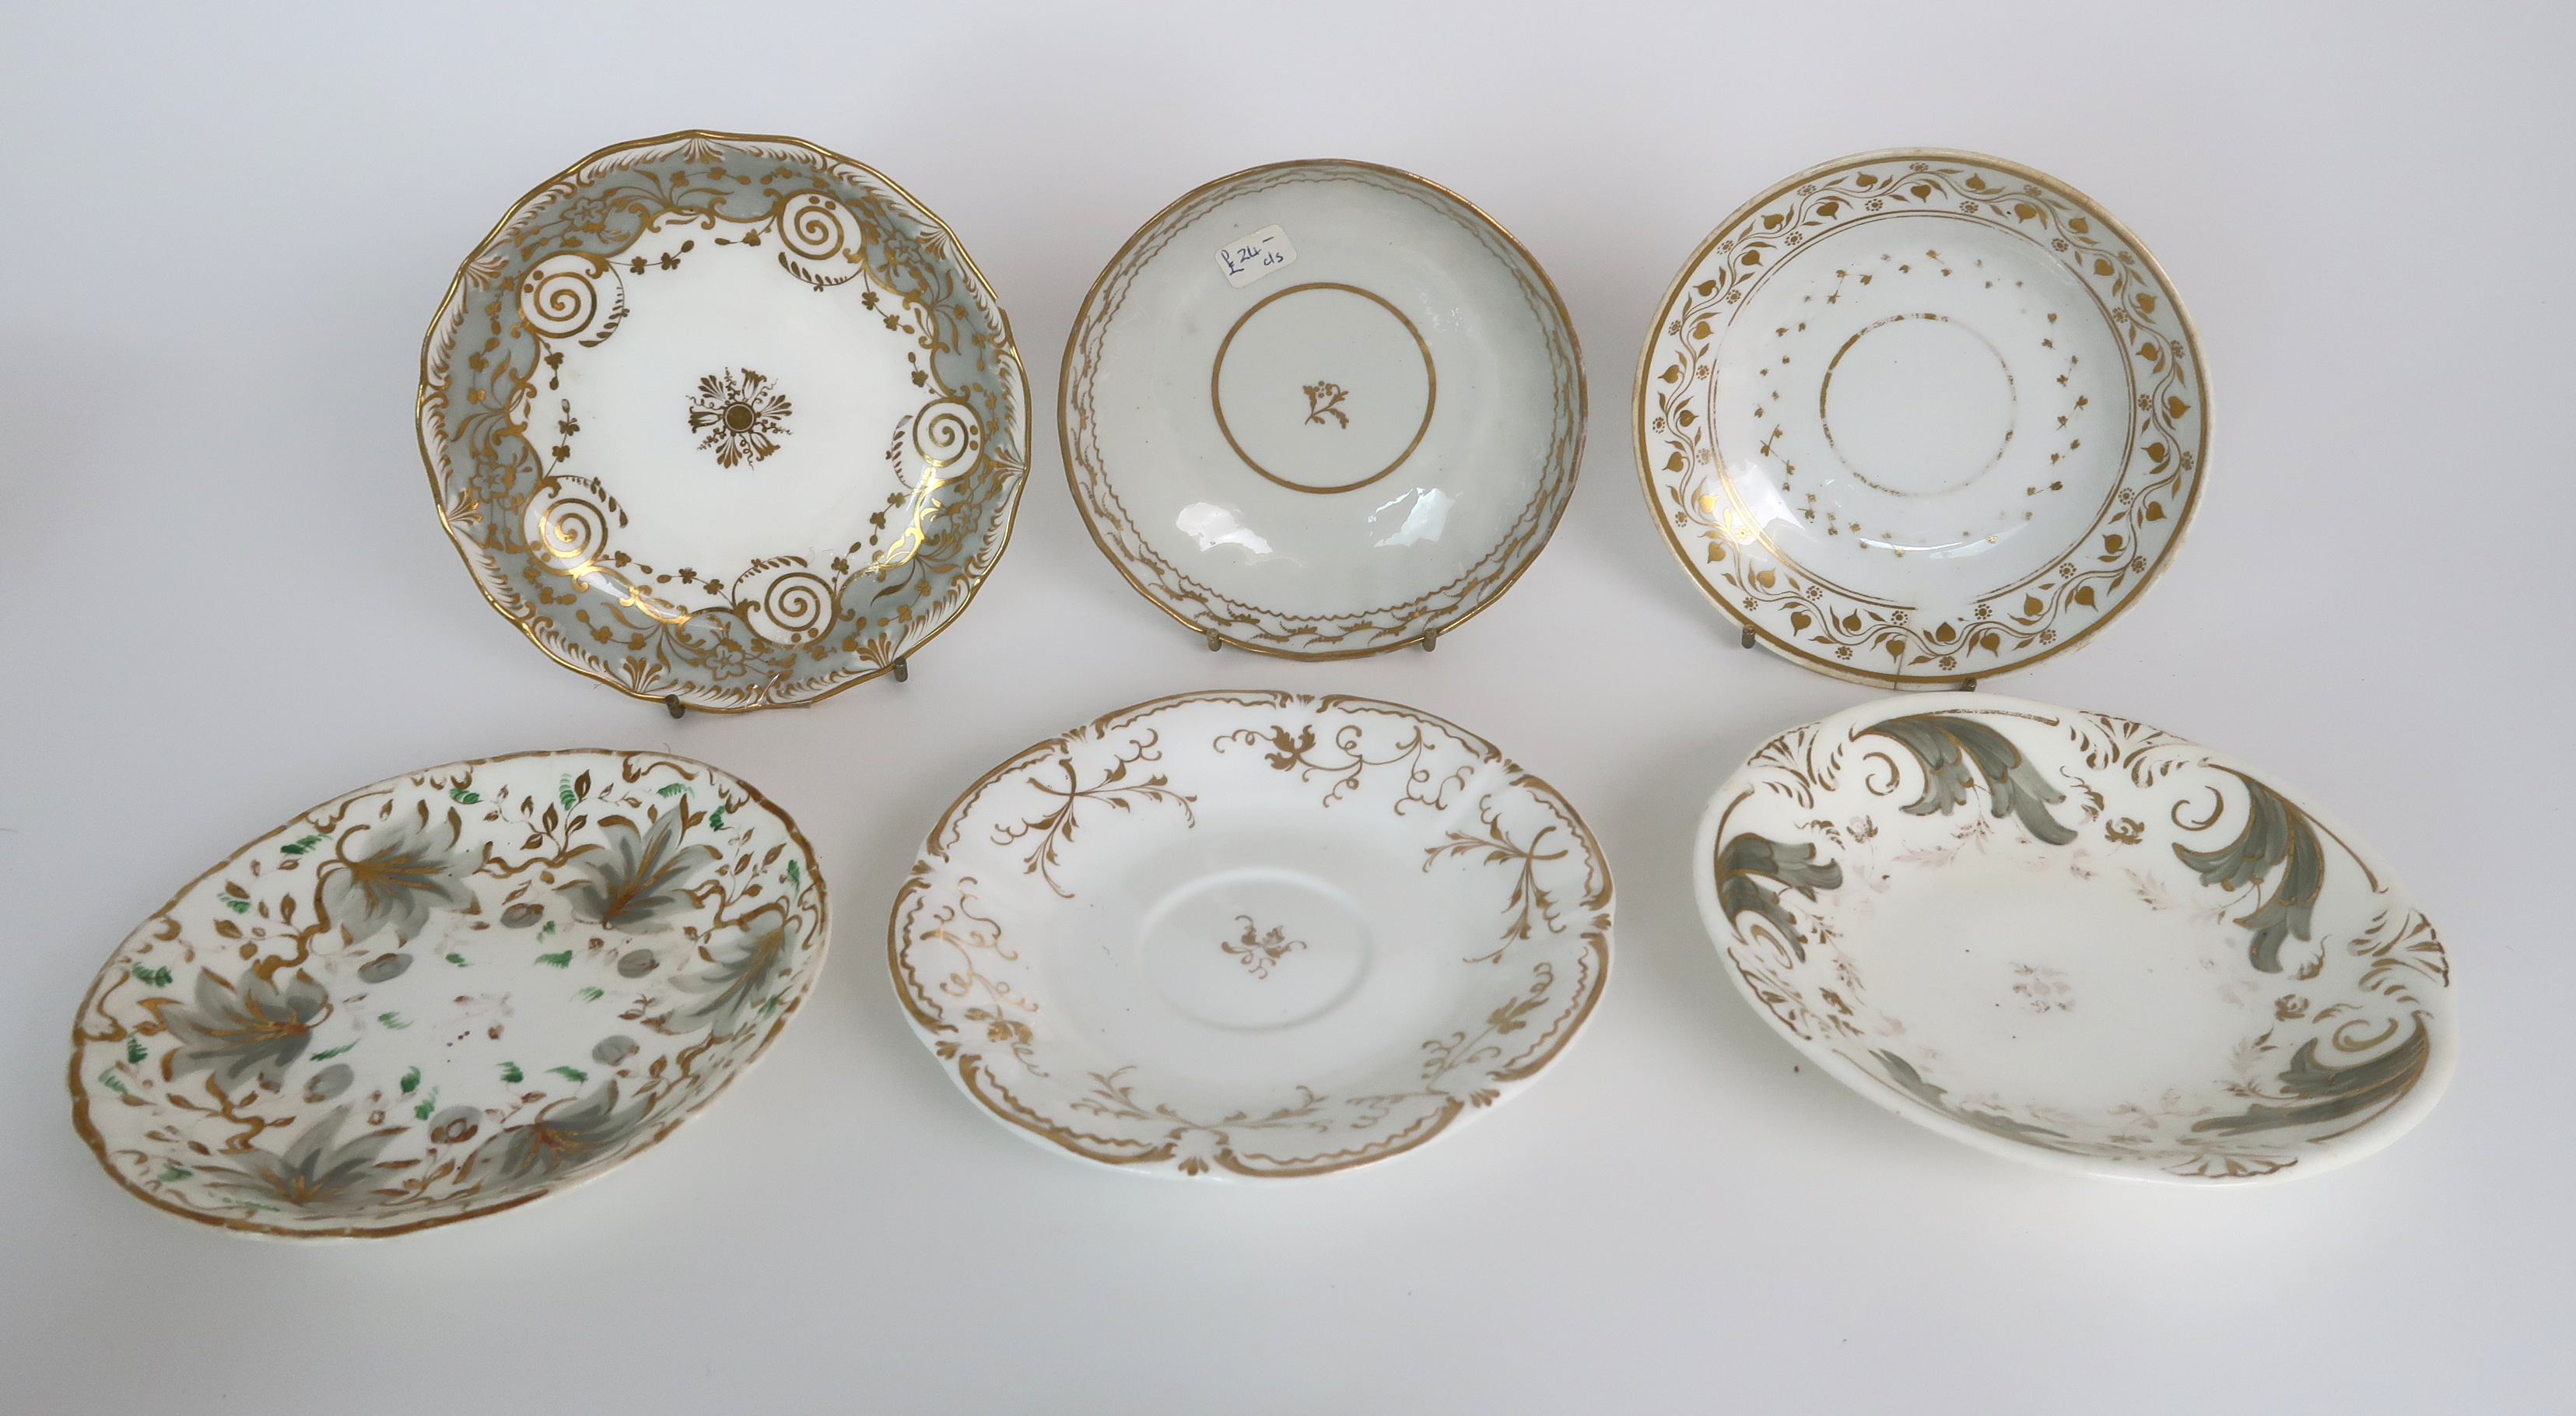 A COLLECTION OF 19TH CENTURY ENGLISH TEA AND COFFEE WARES the white ground with either grey and gilt - Image 8 of 22